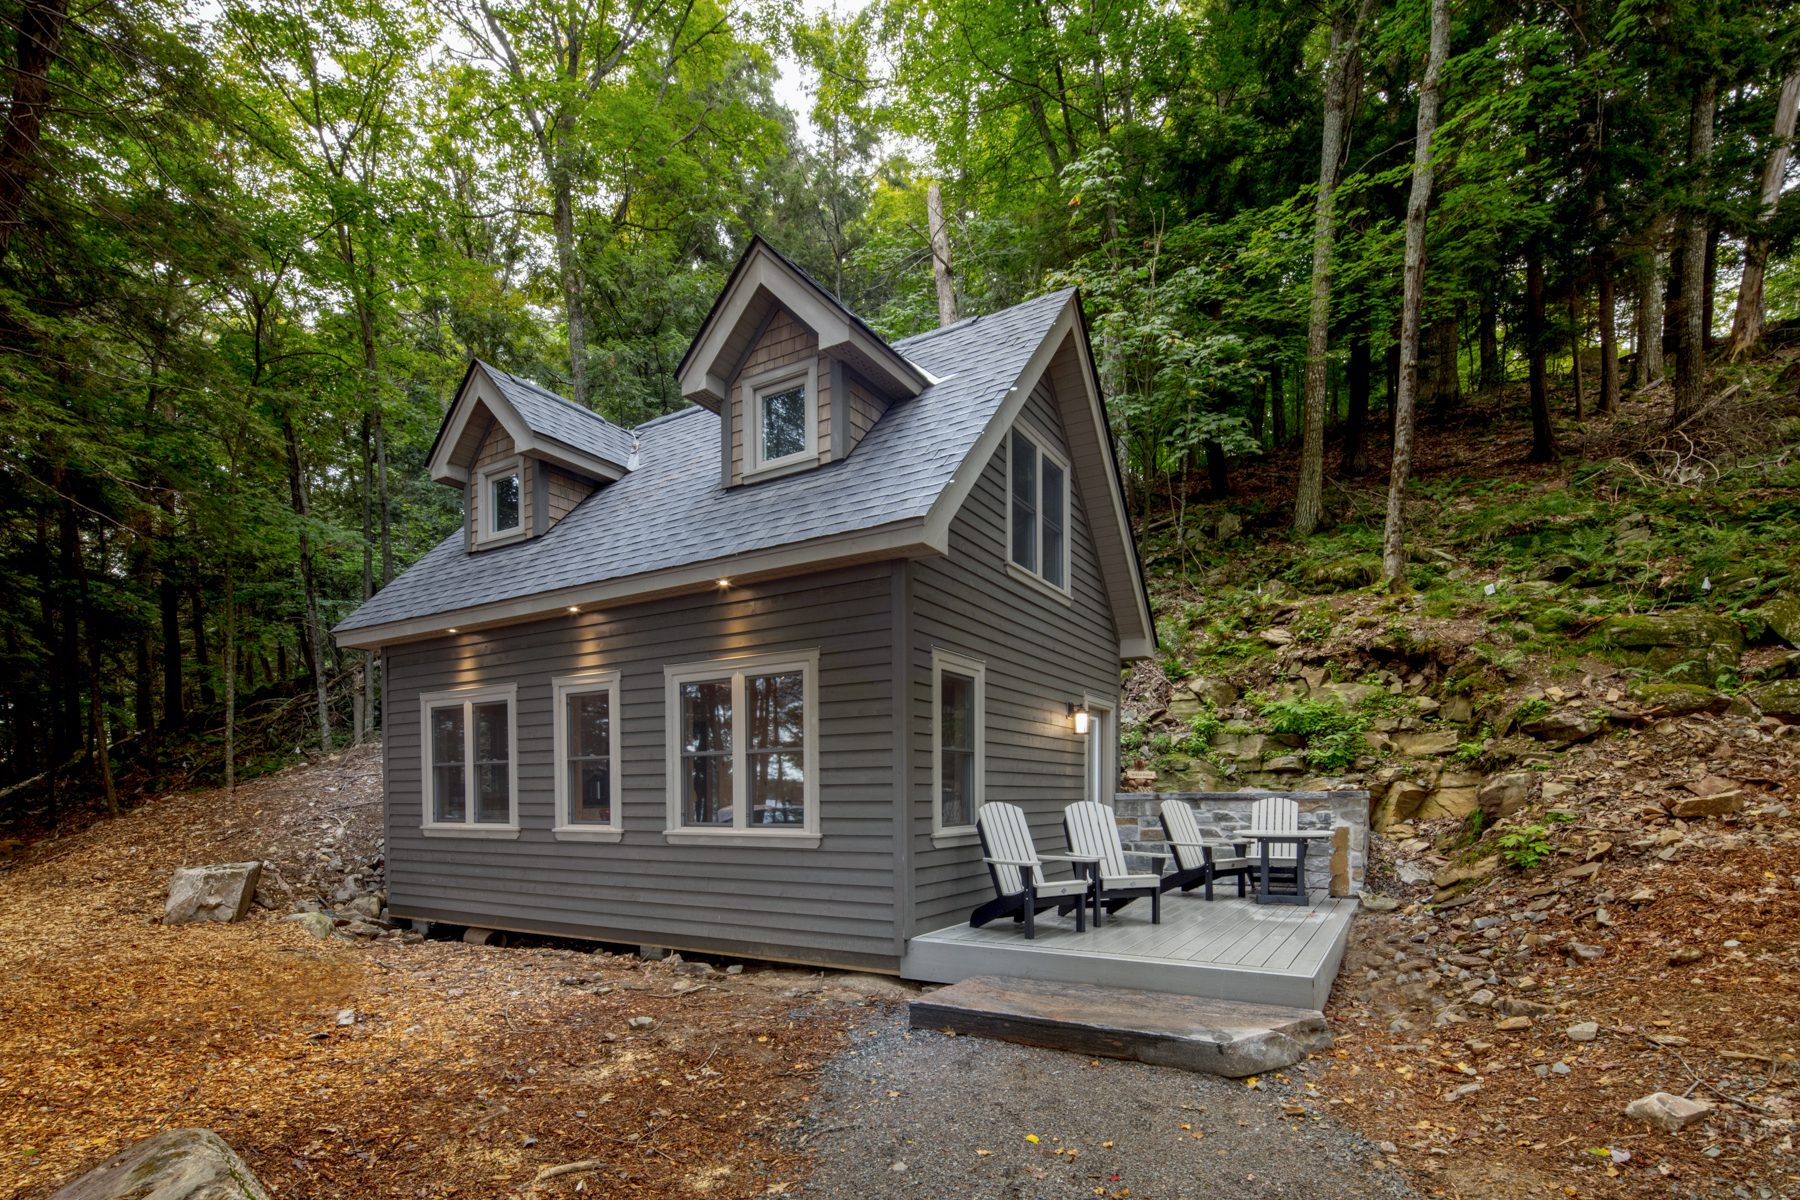 Normerica Timber Frame, Exterior, Cottage, Bunkie, Cabin